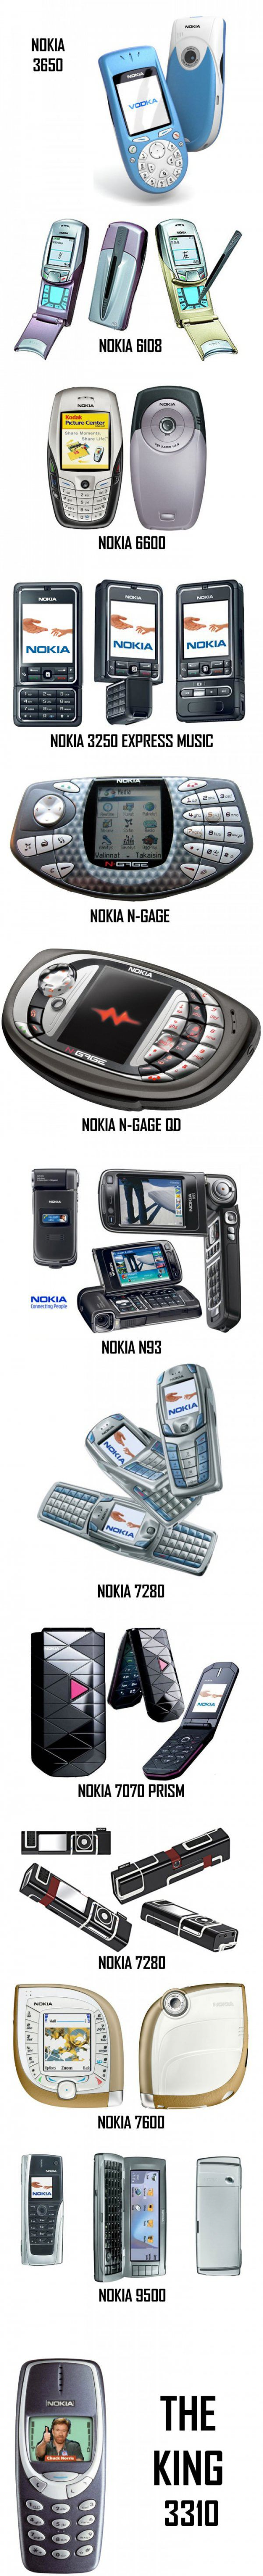 These 13 Nokia Phone Designs Were So Ahead Of Their Time